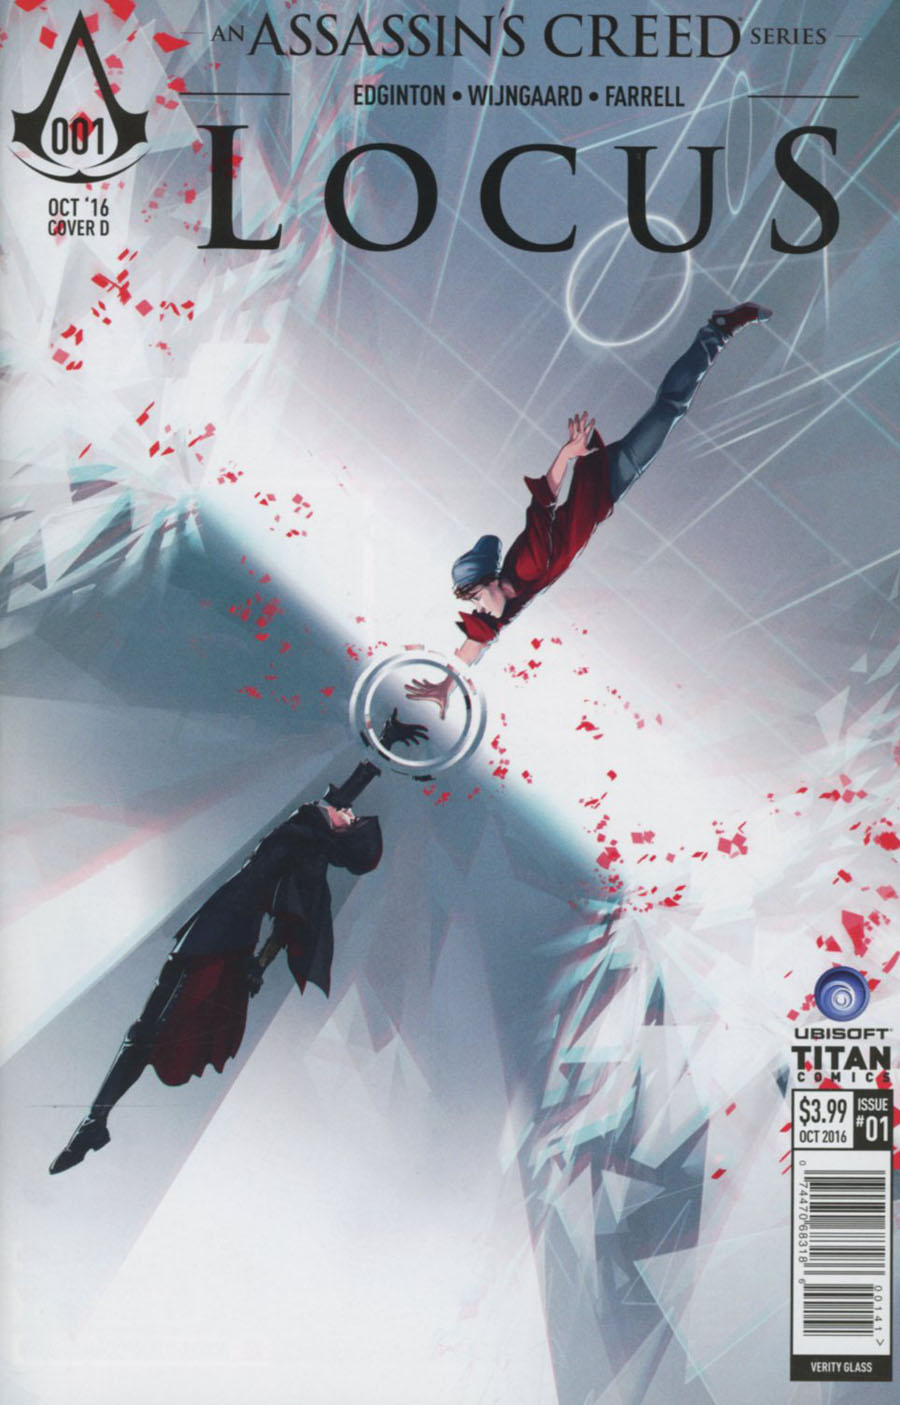 Assassins Creed Locus #1 Cover D Variant Verity Glass Cover